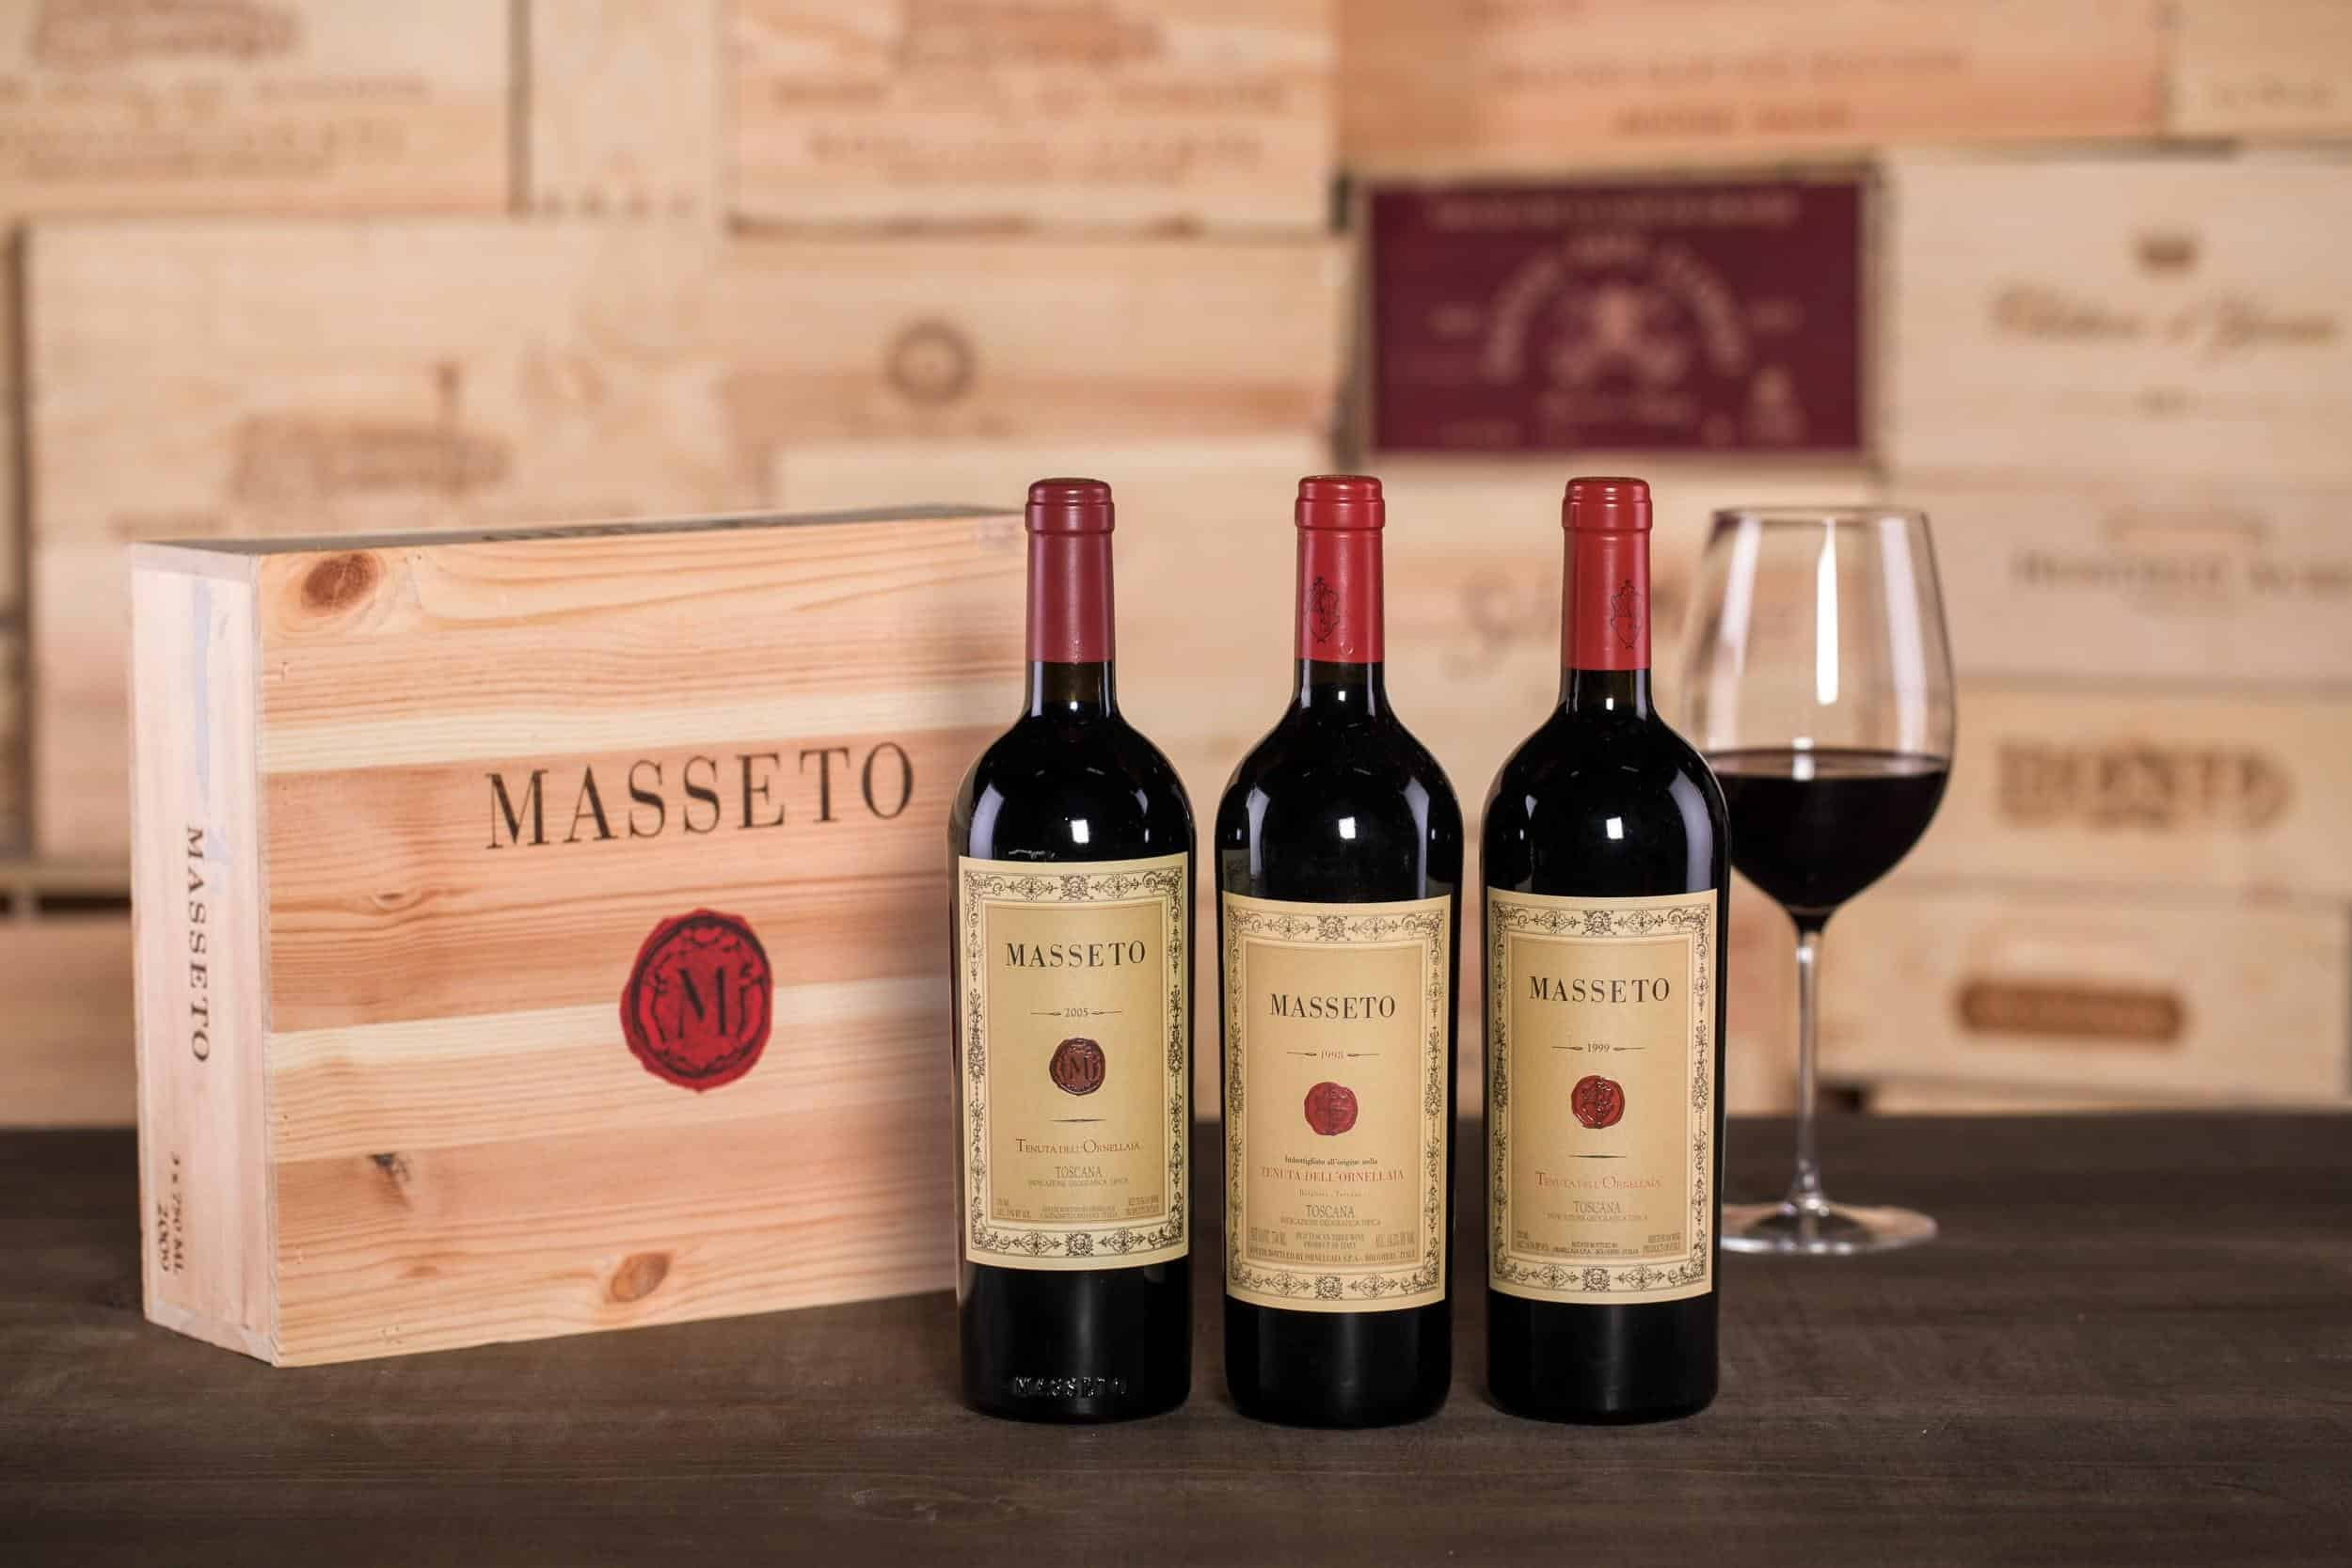 2001 Masseto is one of the top ten wines in Tuscany